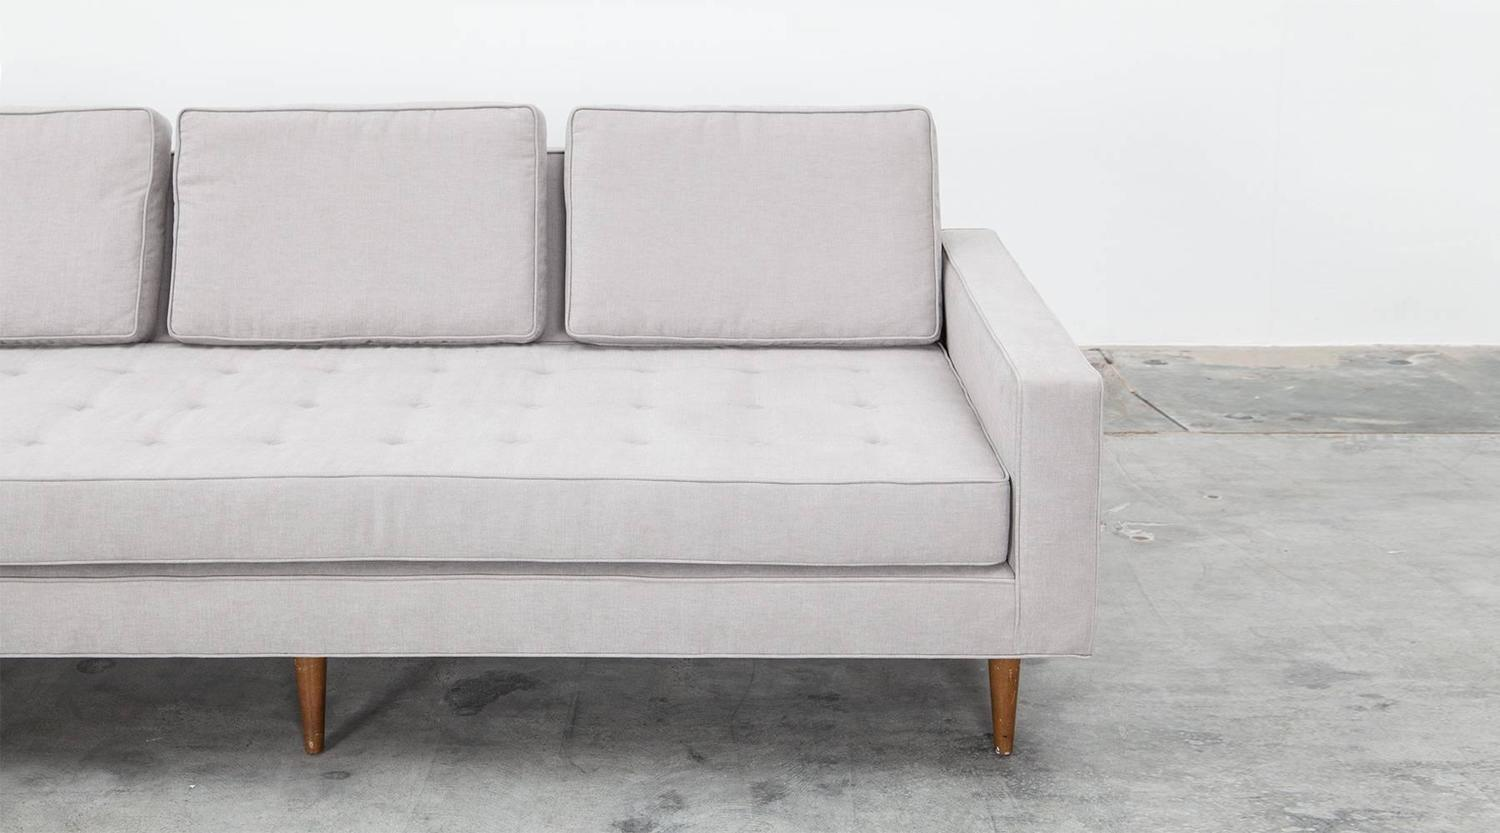 Sofa Sale Harveys Harvey Probber Sofa Upholstered In Jack Lenor Larsen Fabric At